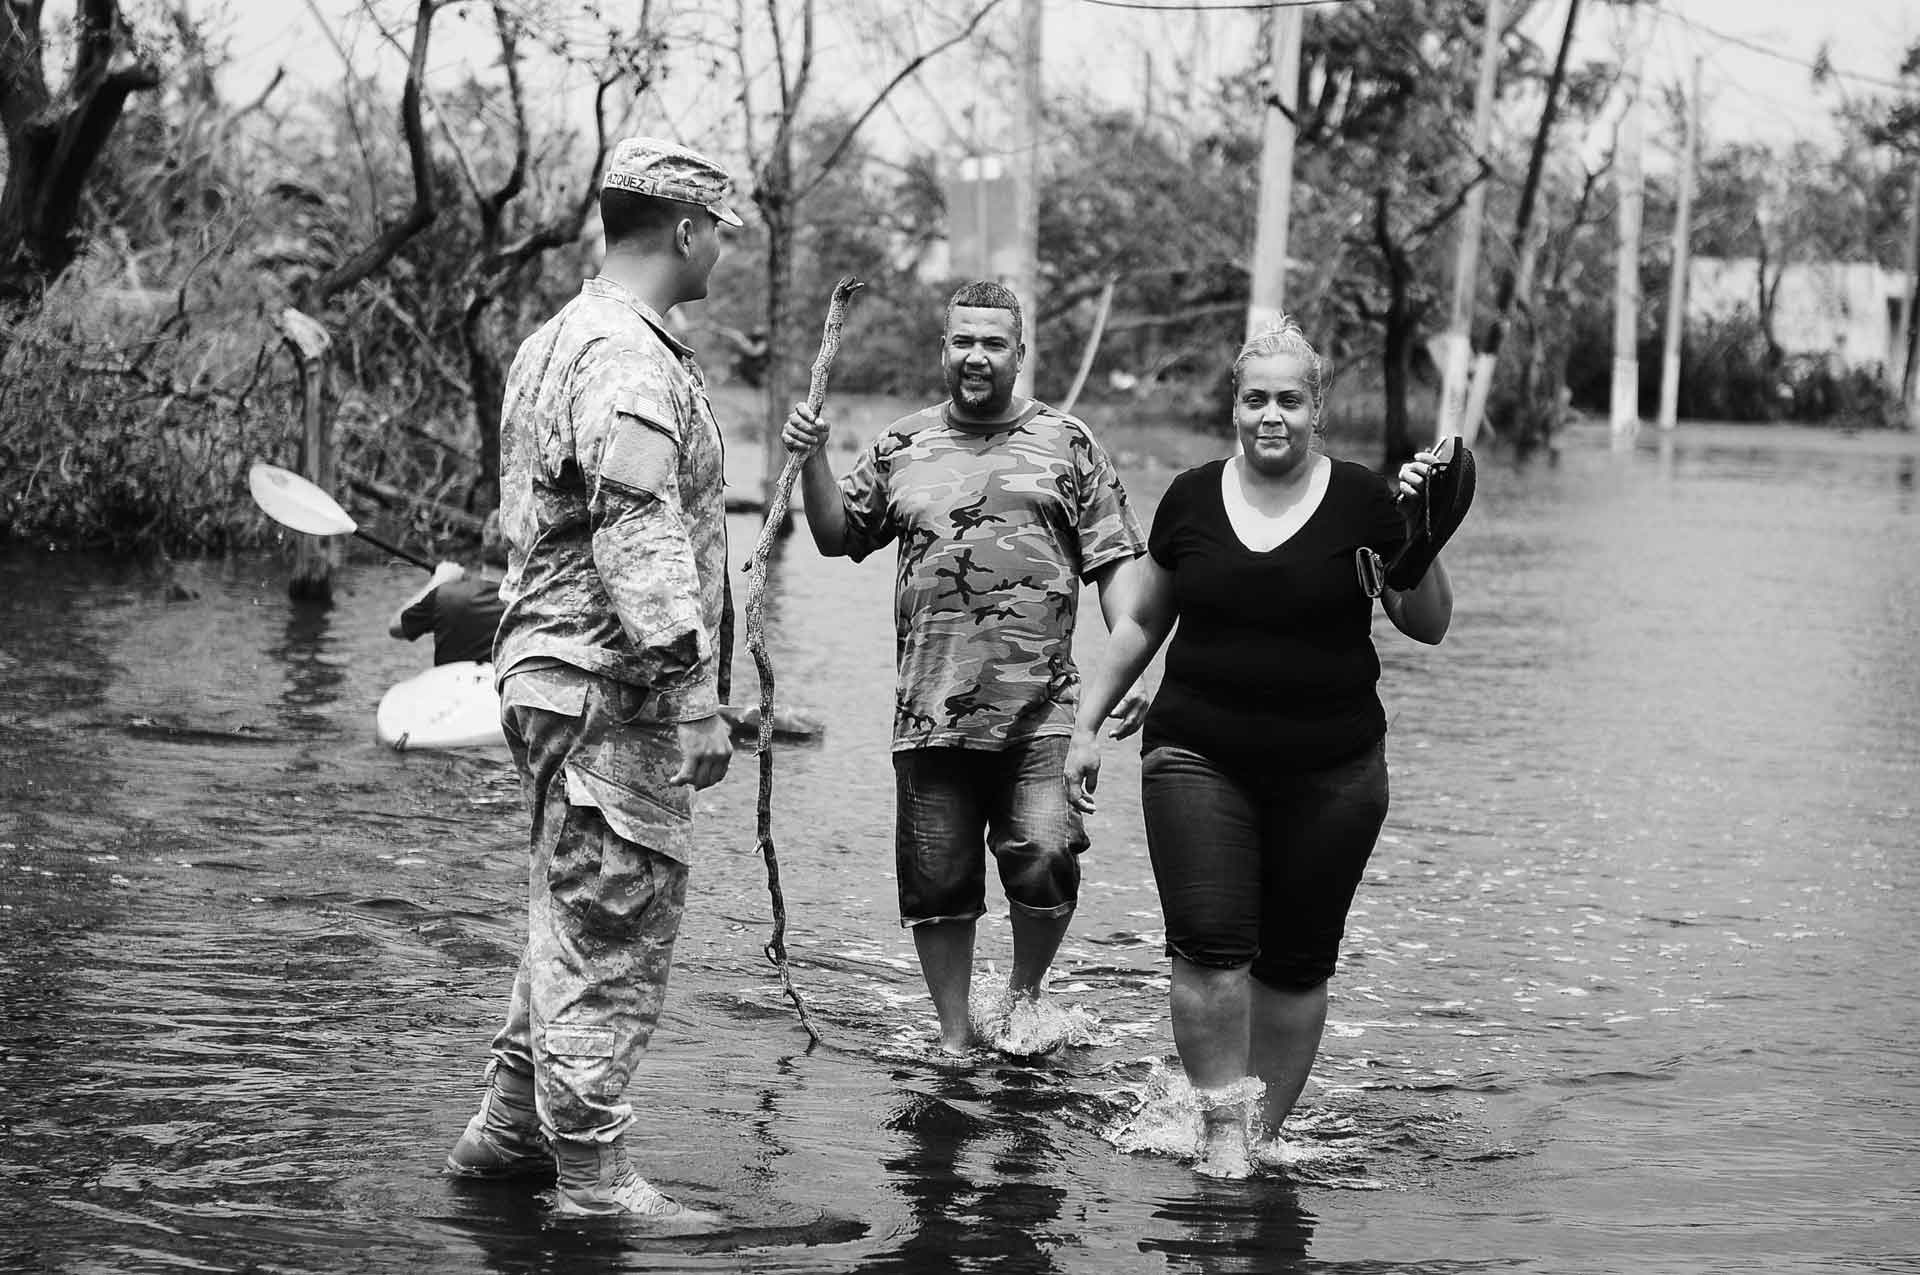 Puerto Rico National Guard Soldier helps a couple getting away from the flooded areas in Condado, San Juan, Puerto Rico after the path of Hurricane Maria. Photo by Sgt. Jose Ahiram Diaz-Ramos/PRNG-PAO